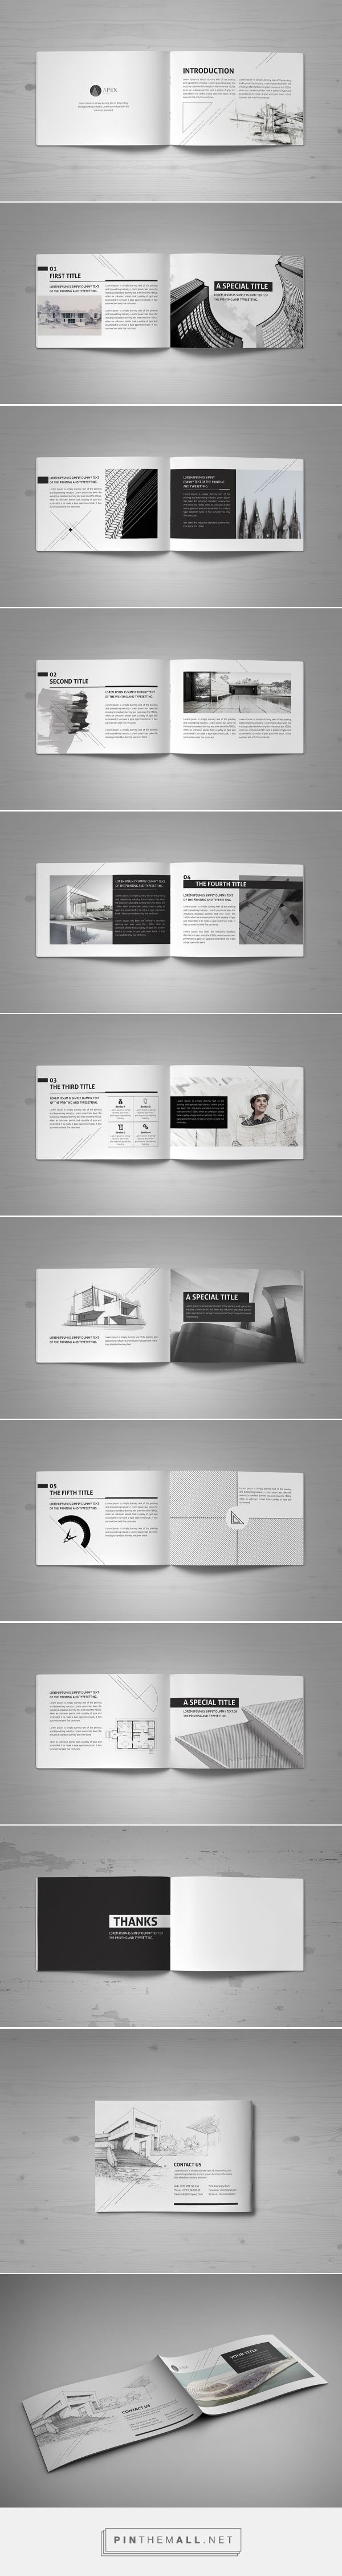 minimal modern black white architecture brochure by mohammed al